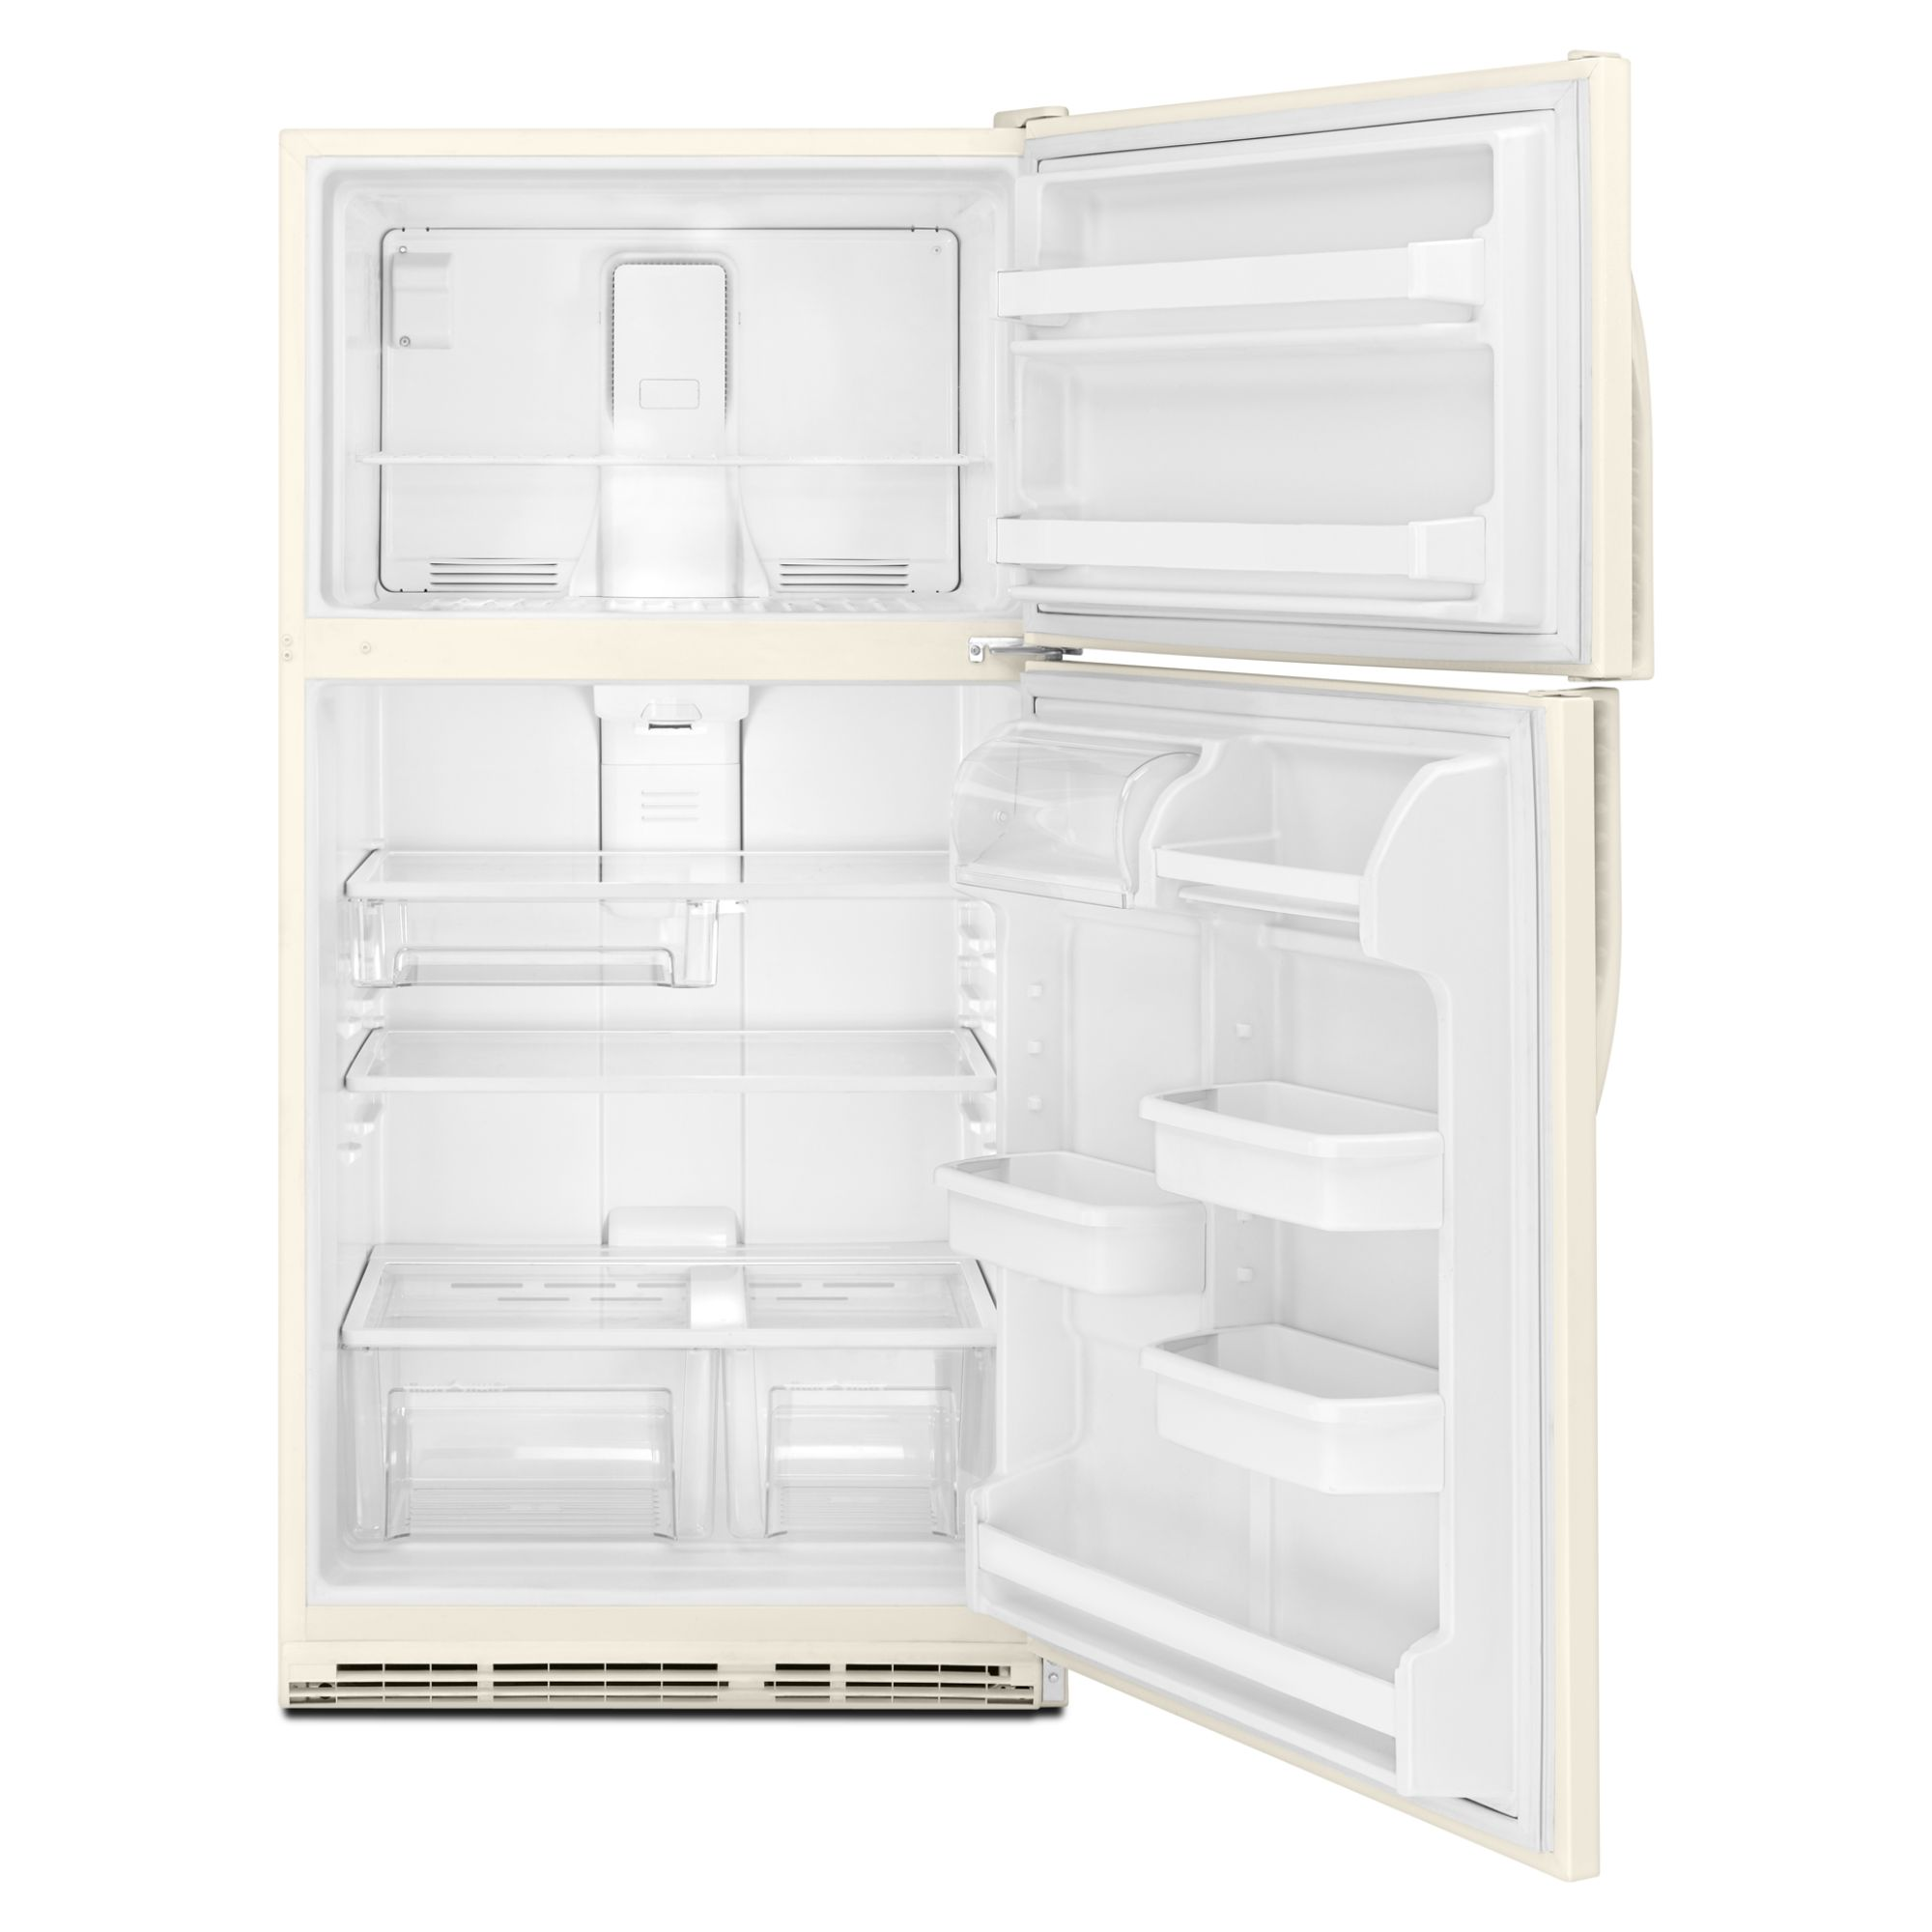 Kenmore 21.0 cu. ft. Top Freezer Refrigerator, Bisque